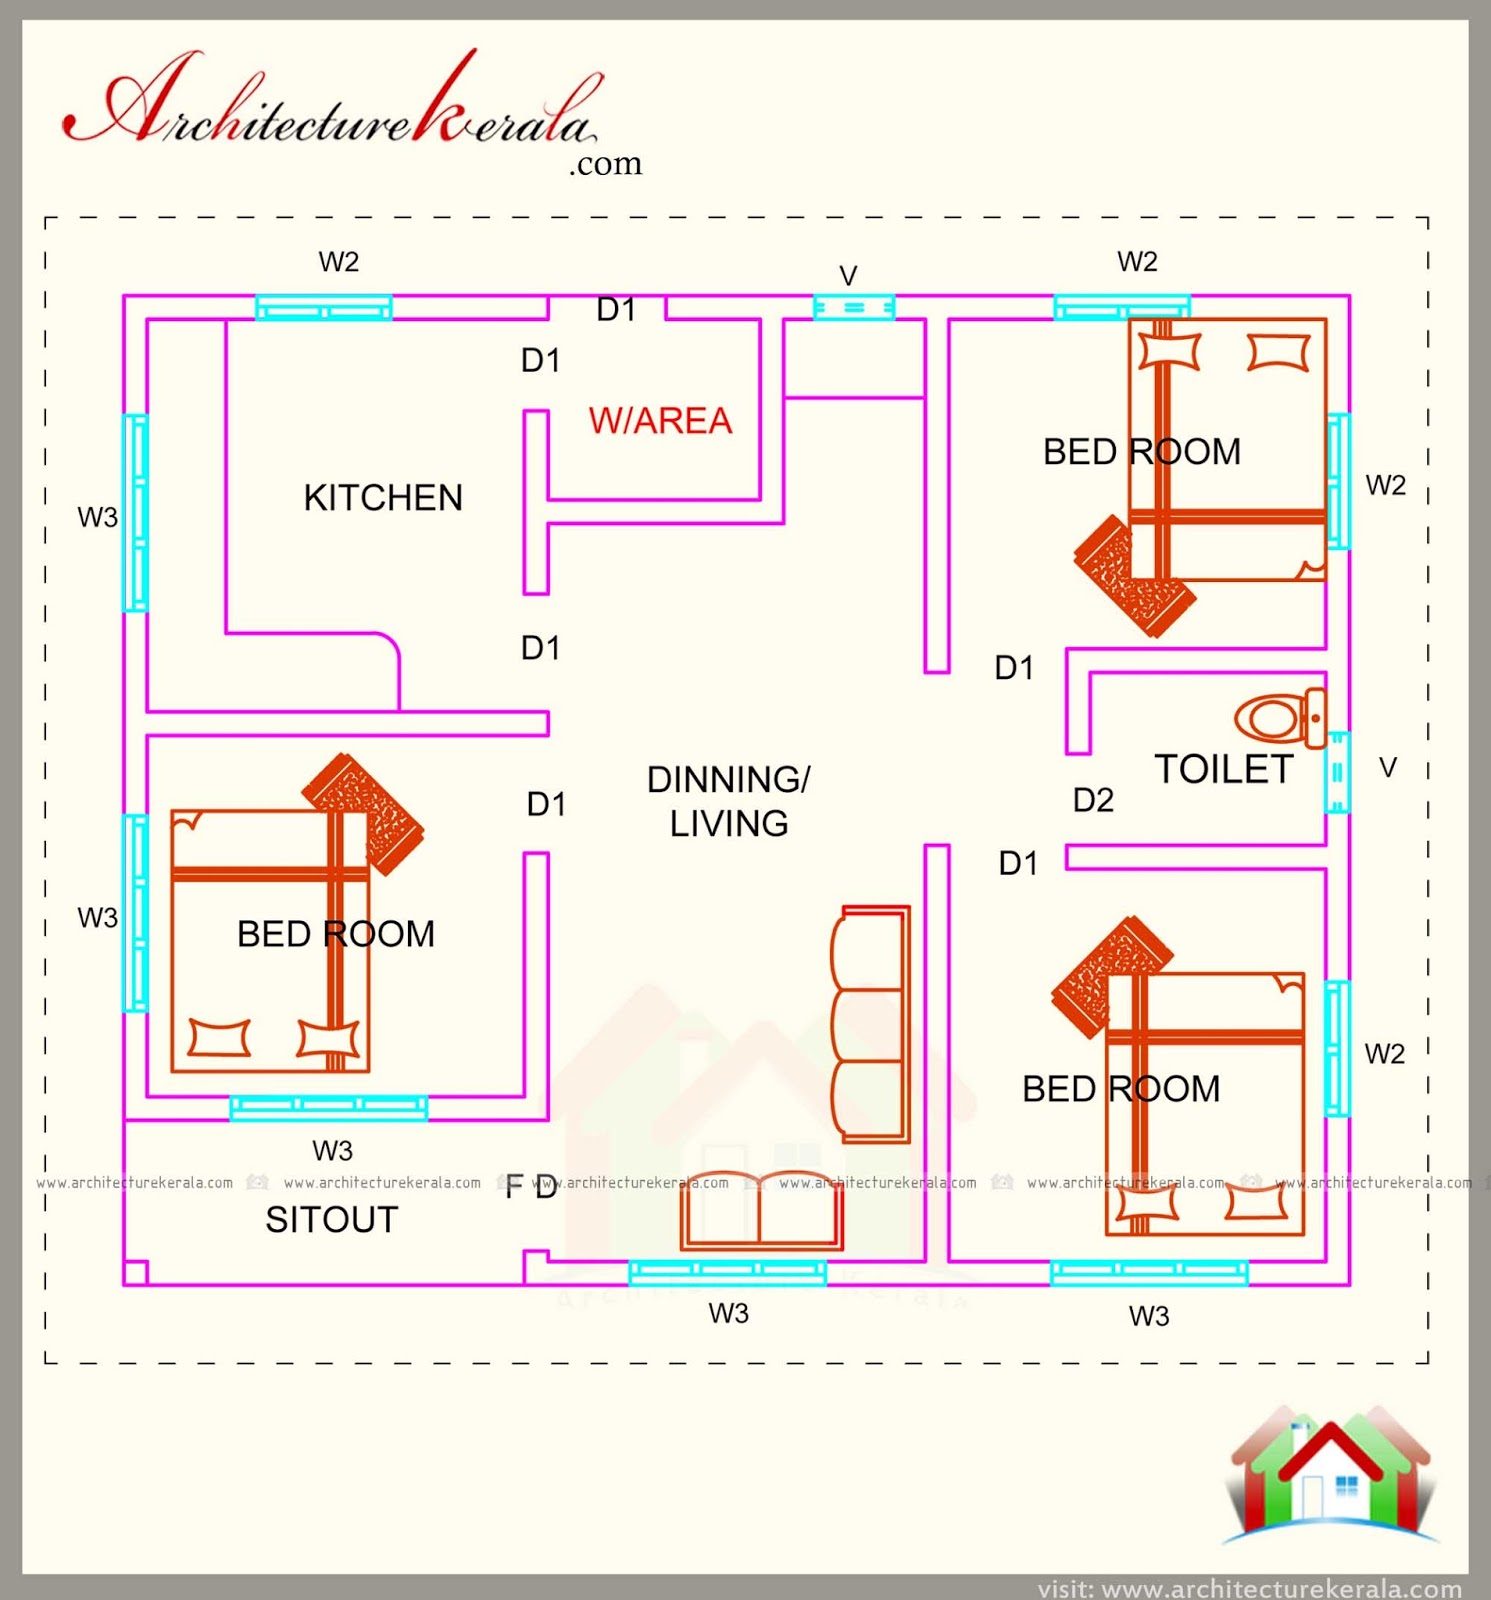 760 square feet 3 bedroom house plan architecture kerala for Home design in 760 sq ft